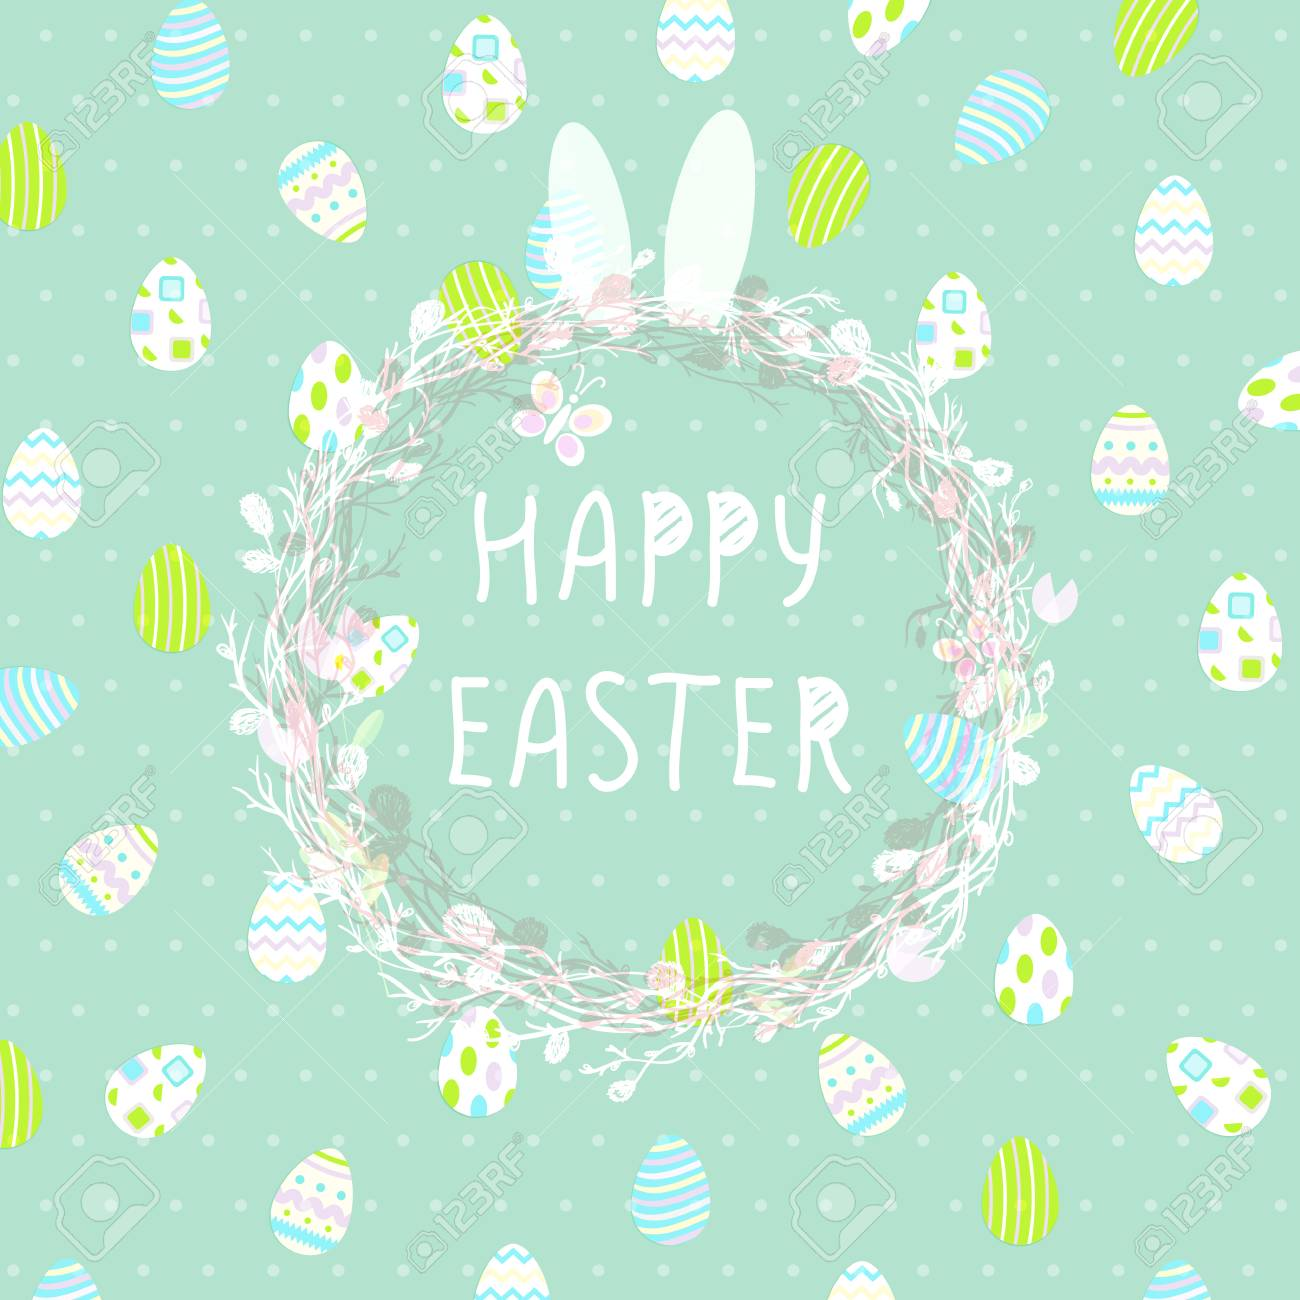 Cute Easter Eggs In A Wicker Nest Greeting Card On A Blue Background